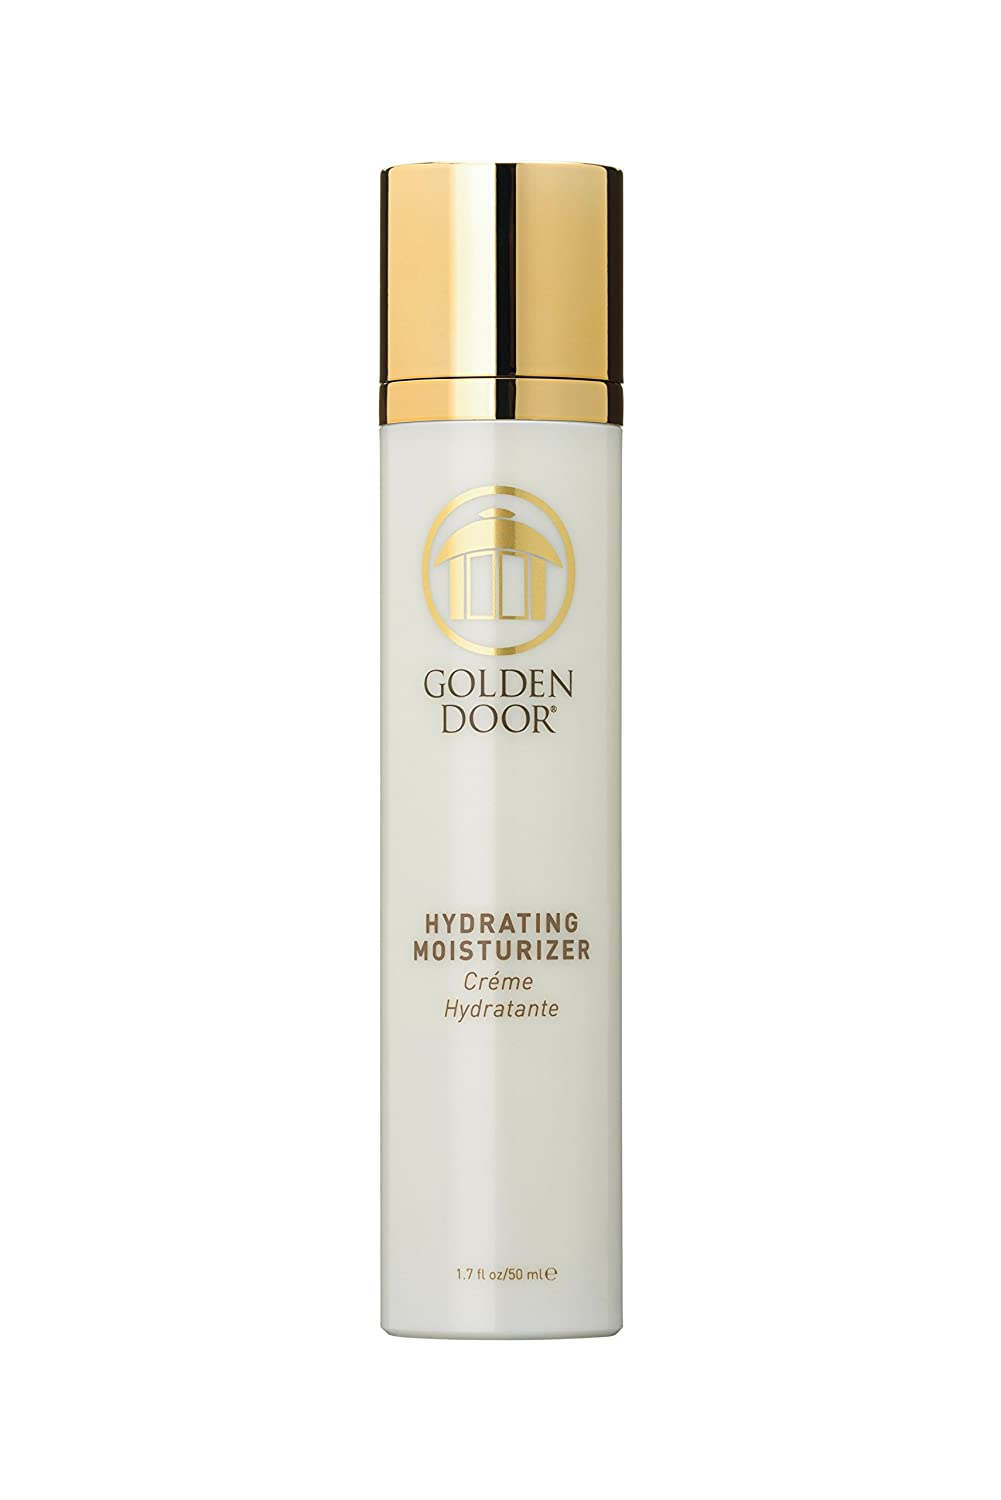 Golden Door Hydrating Moisturizer, 1.7 fl oz, hyaluronic Acid, Deeply Hydrating Daily Facial moisturizer, Anti Wrinkle, Quench Thirsty Skin, Banish Dry Skin, absorbs Quickly, replenishing